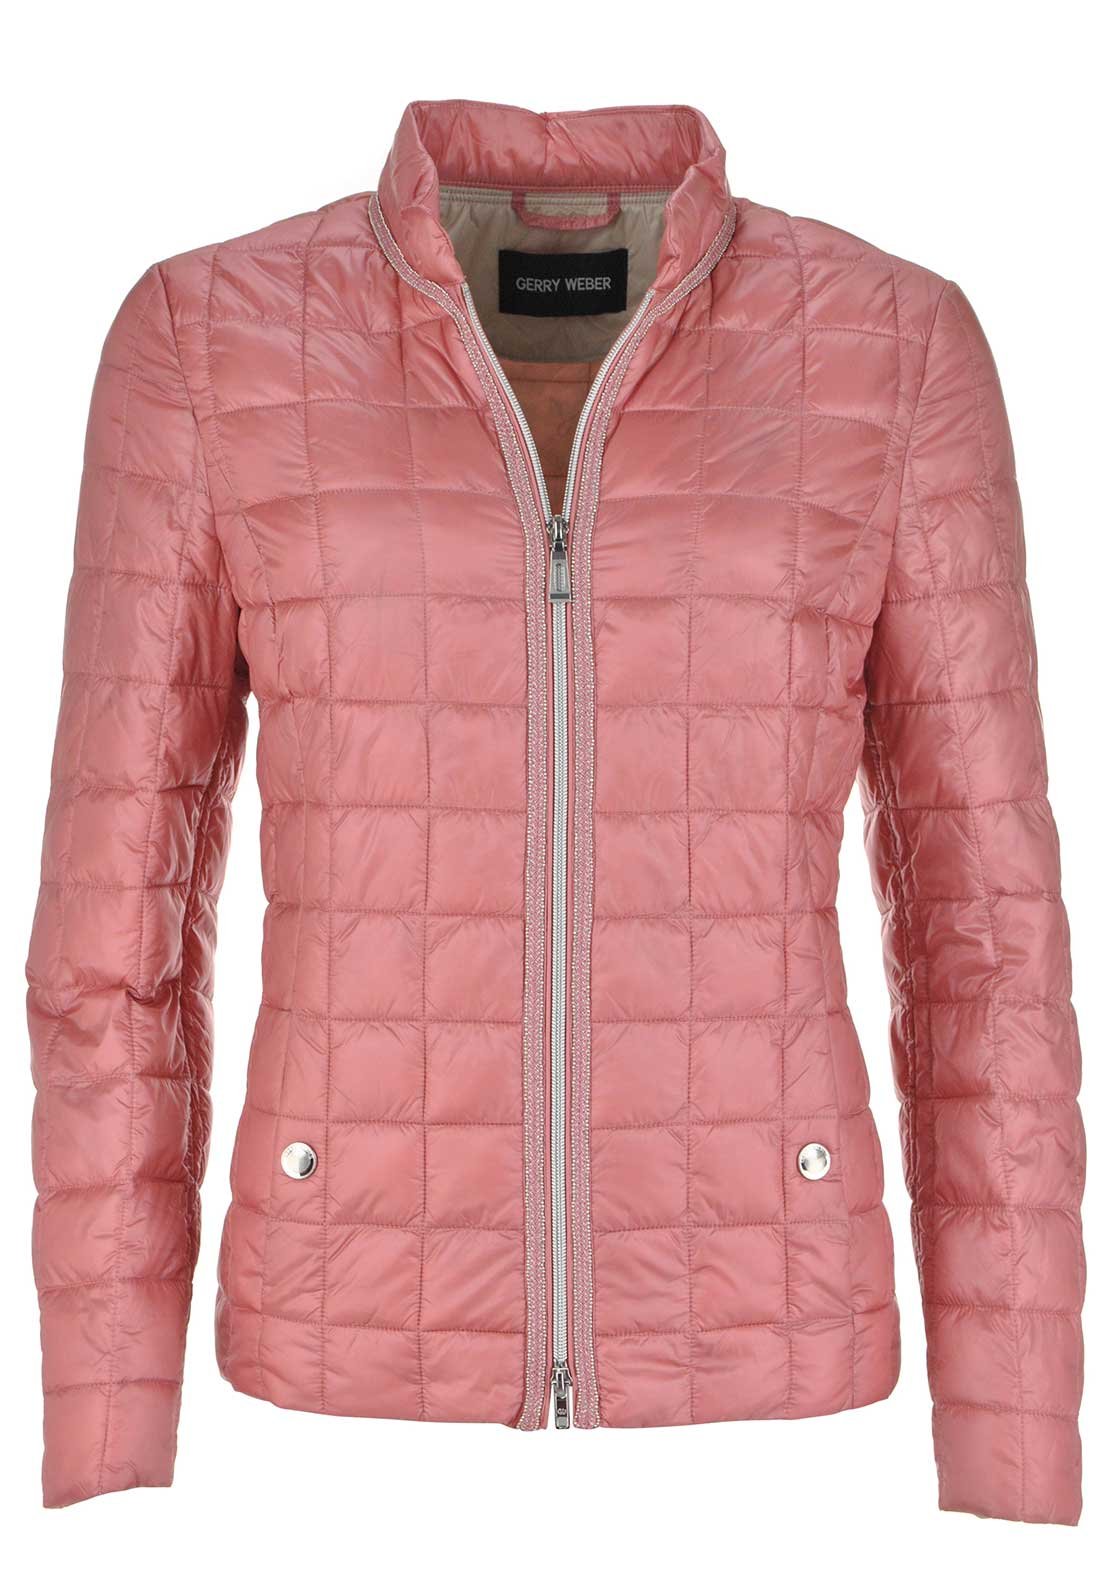 Gerry Weber Stud Embellished Quilted Anorak Jacket, Salmon Pink